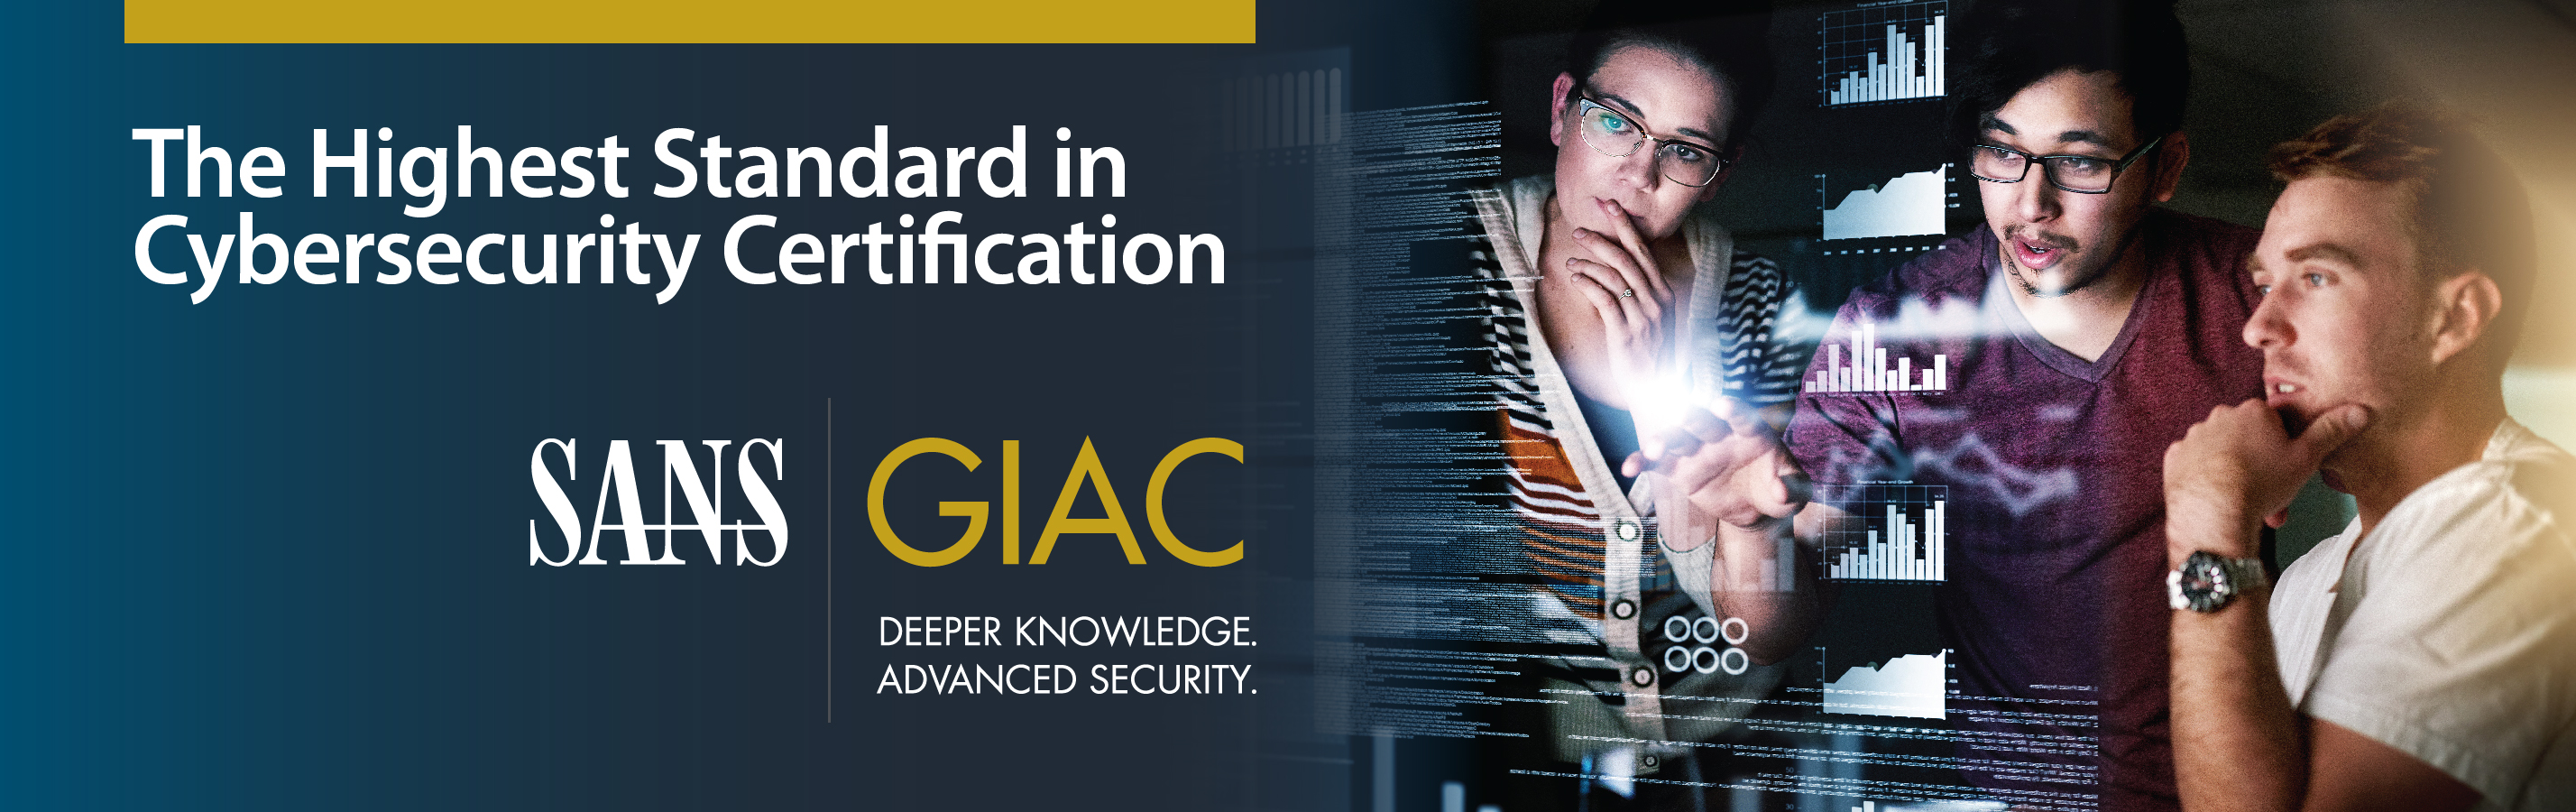 GIAC Certification Banner